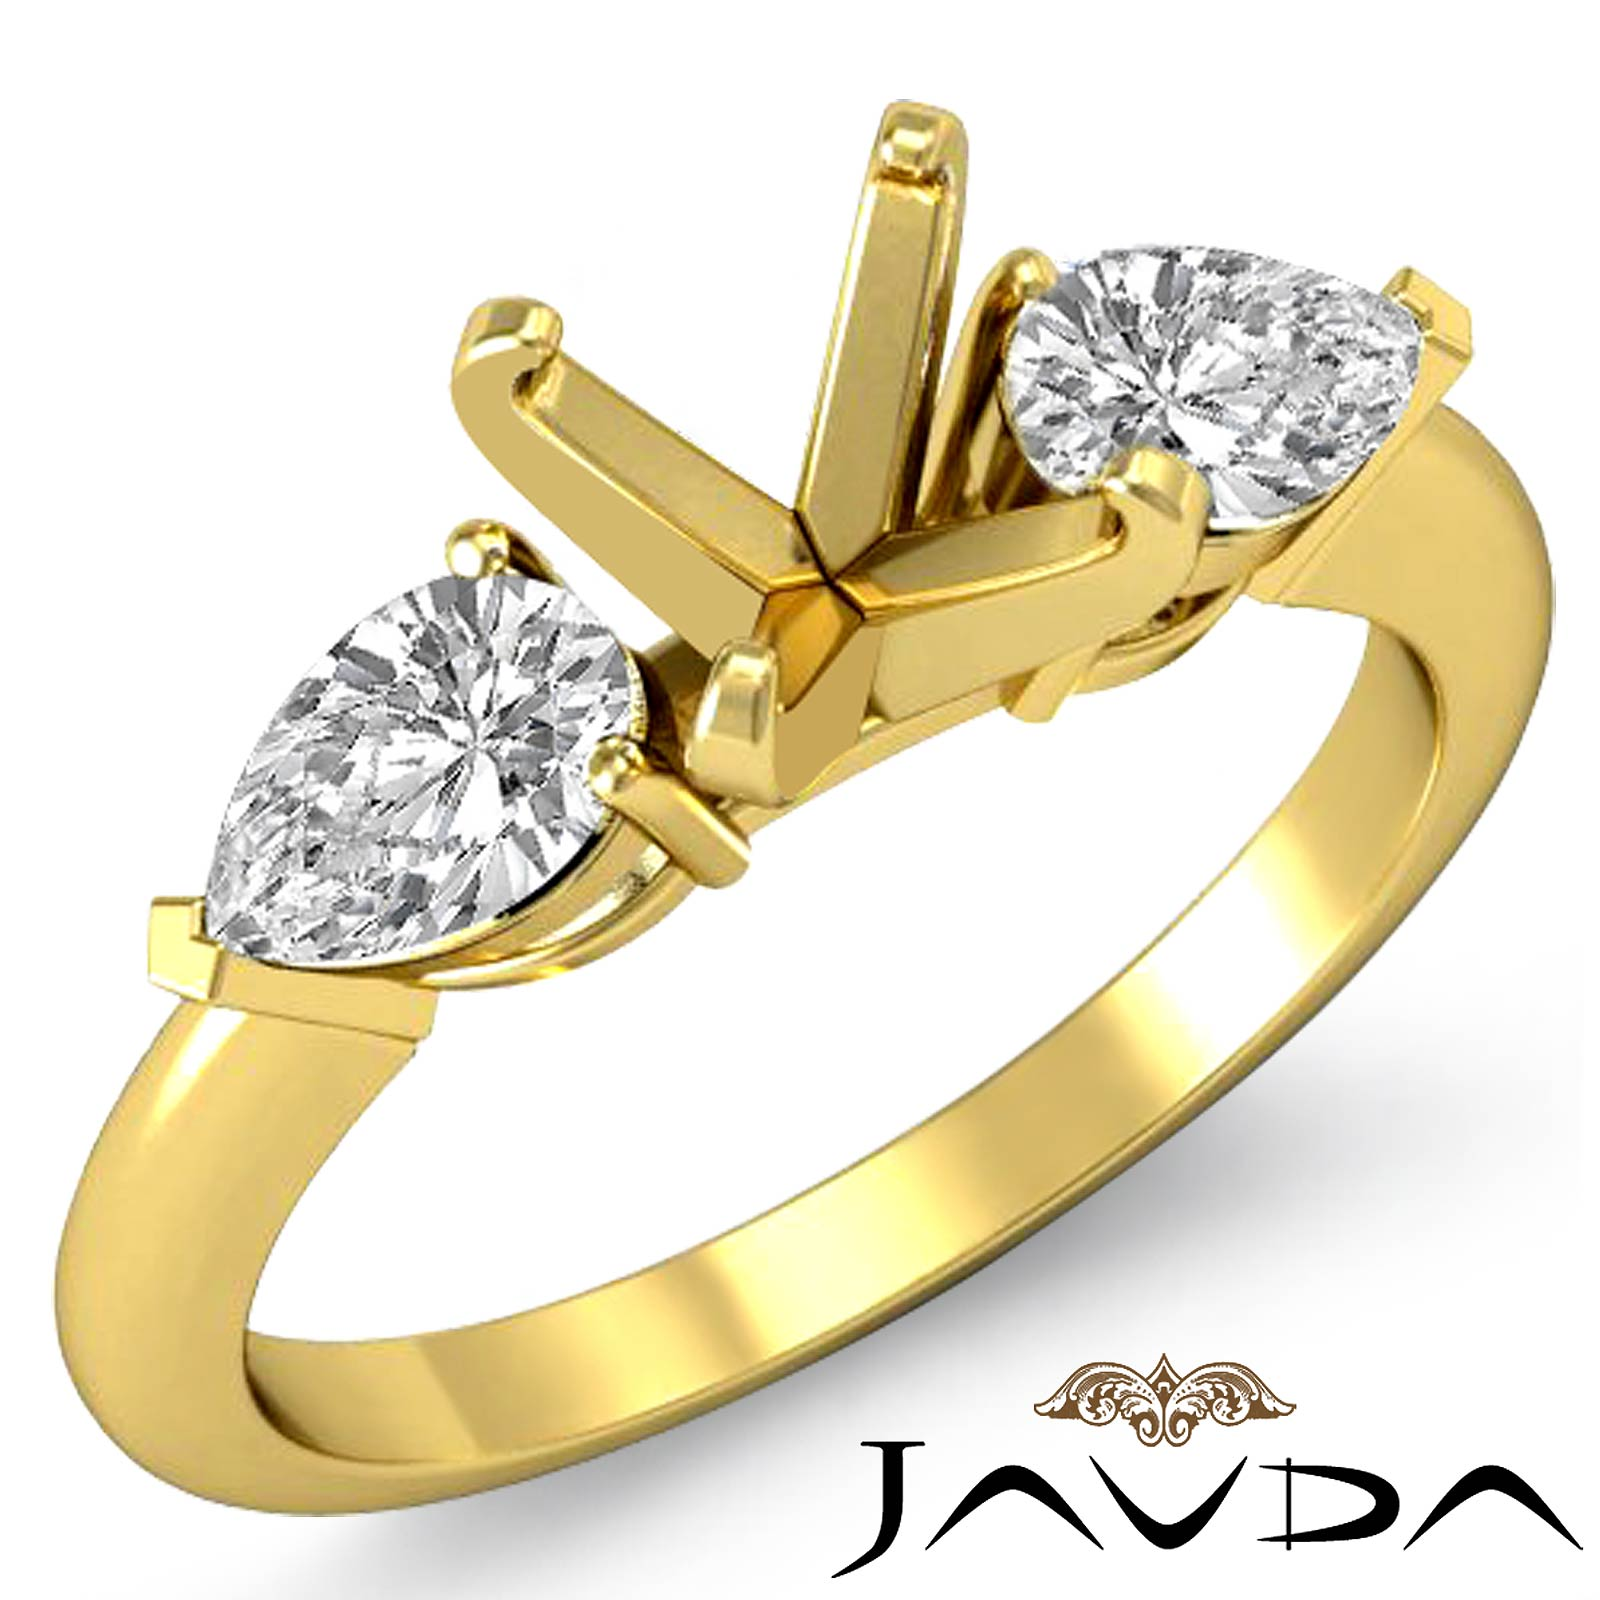 Pear Diamond Three Stone Engagement Setting Ring 14k Yellow Gold Round SemiMo